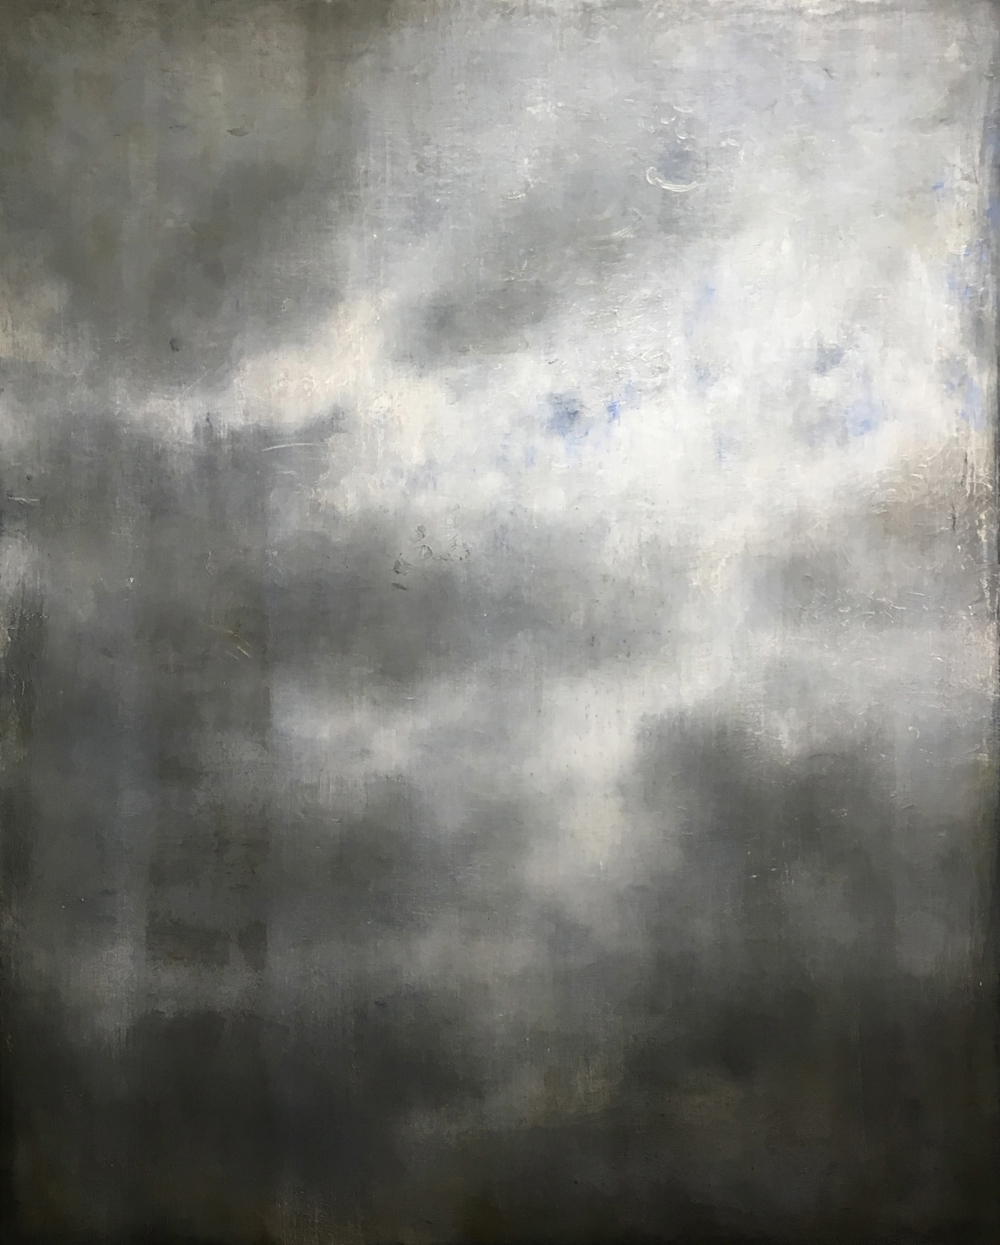 Linda Davidson, Everyday Sky 4 (Sky Over Berlin Long Remembered), 2016-17, oil and wax on panel, 60 x 48 inches, $5500.